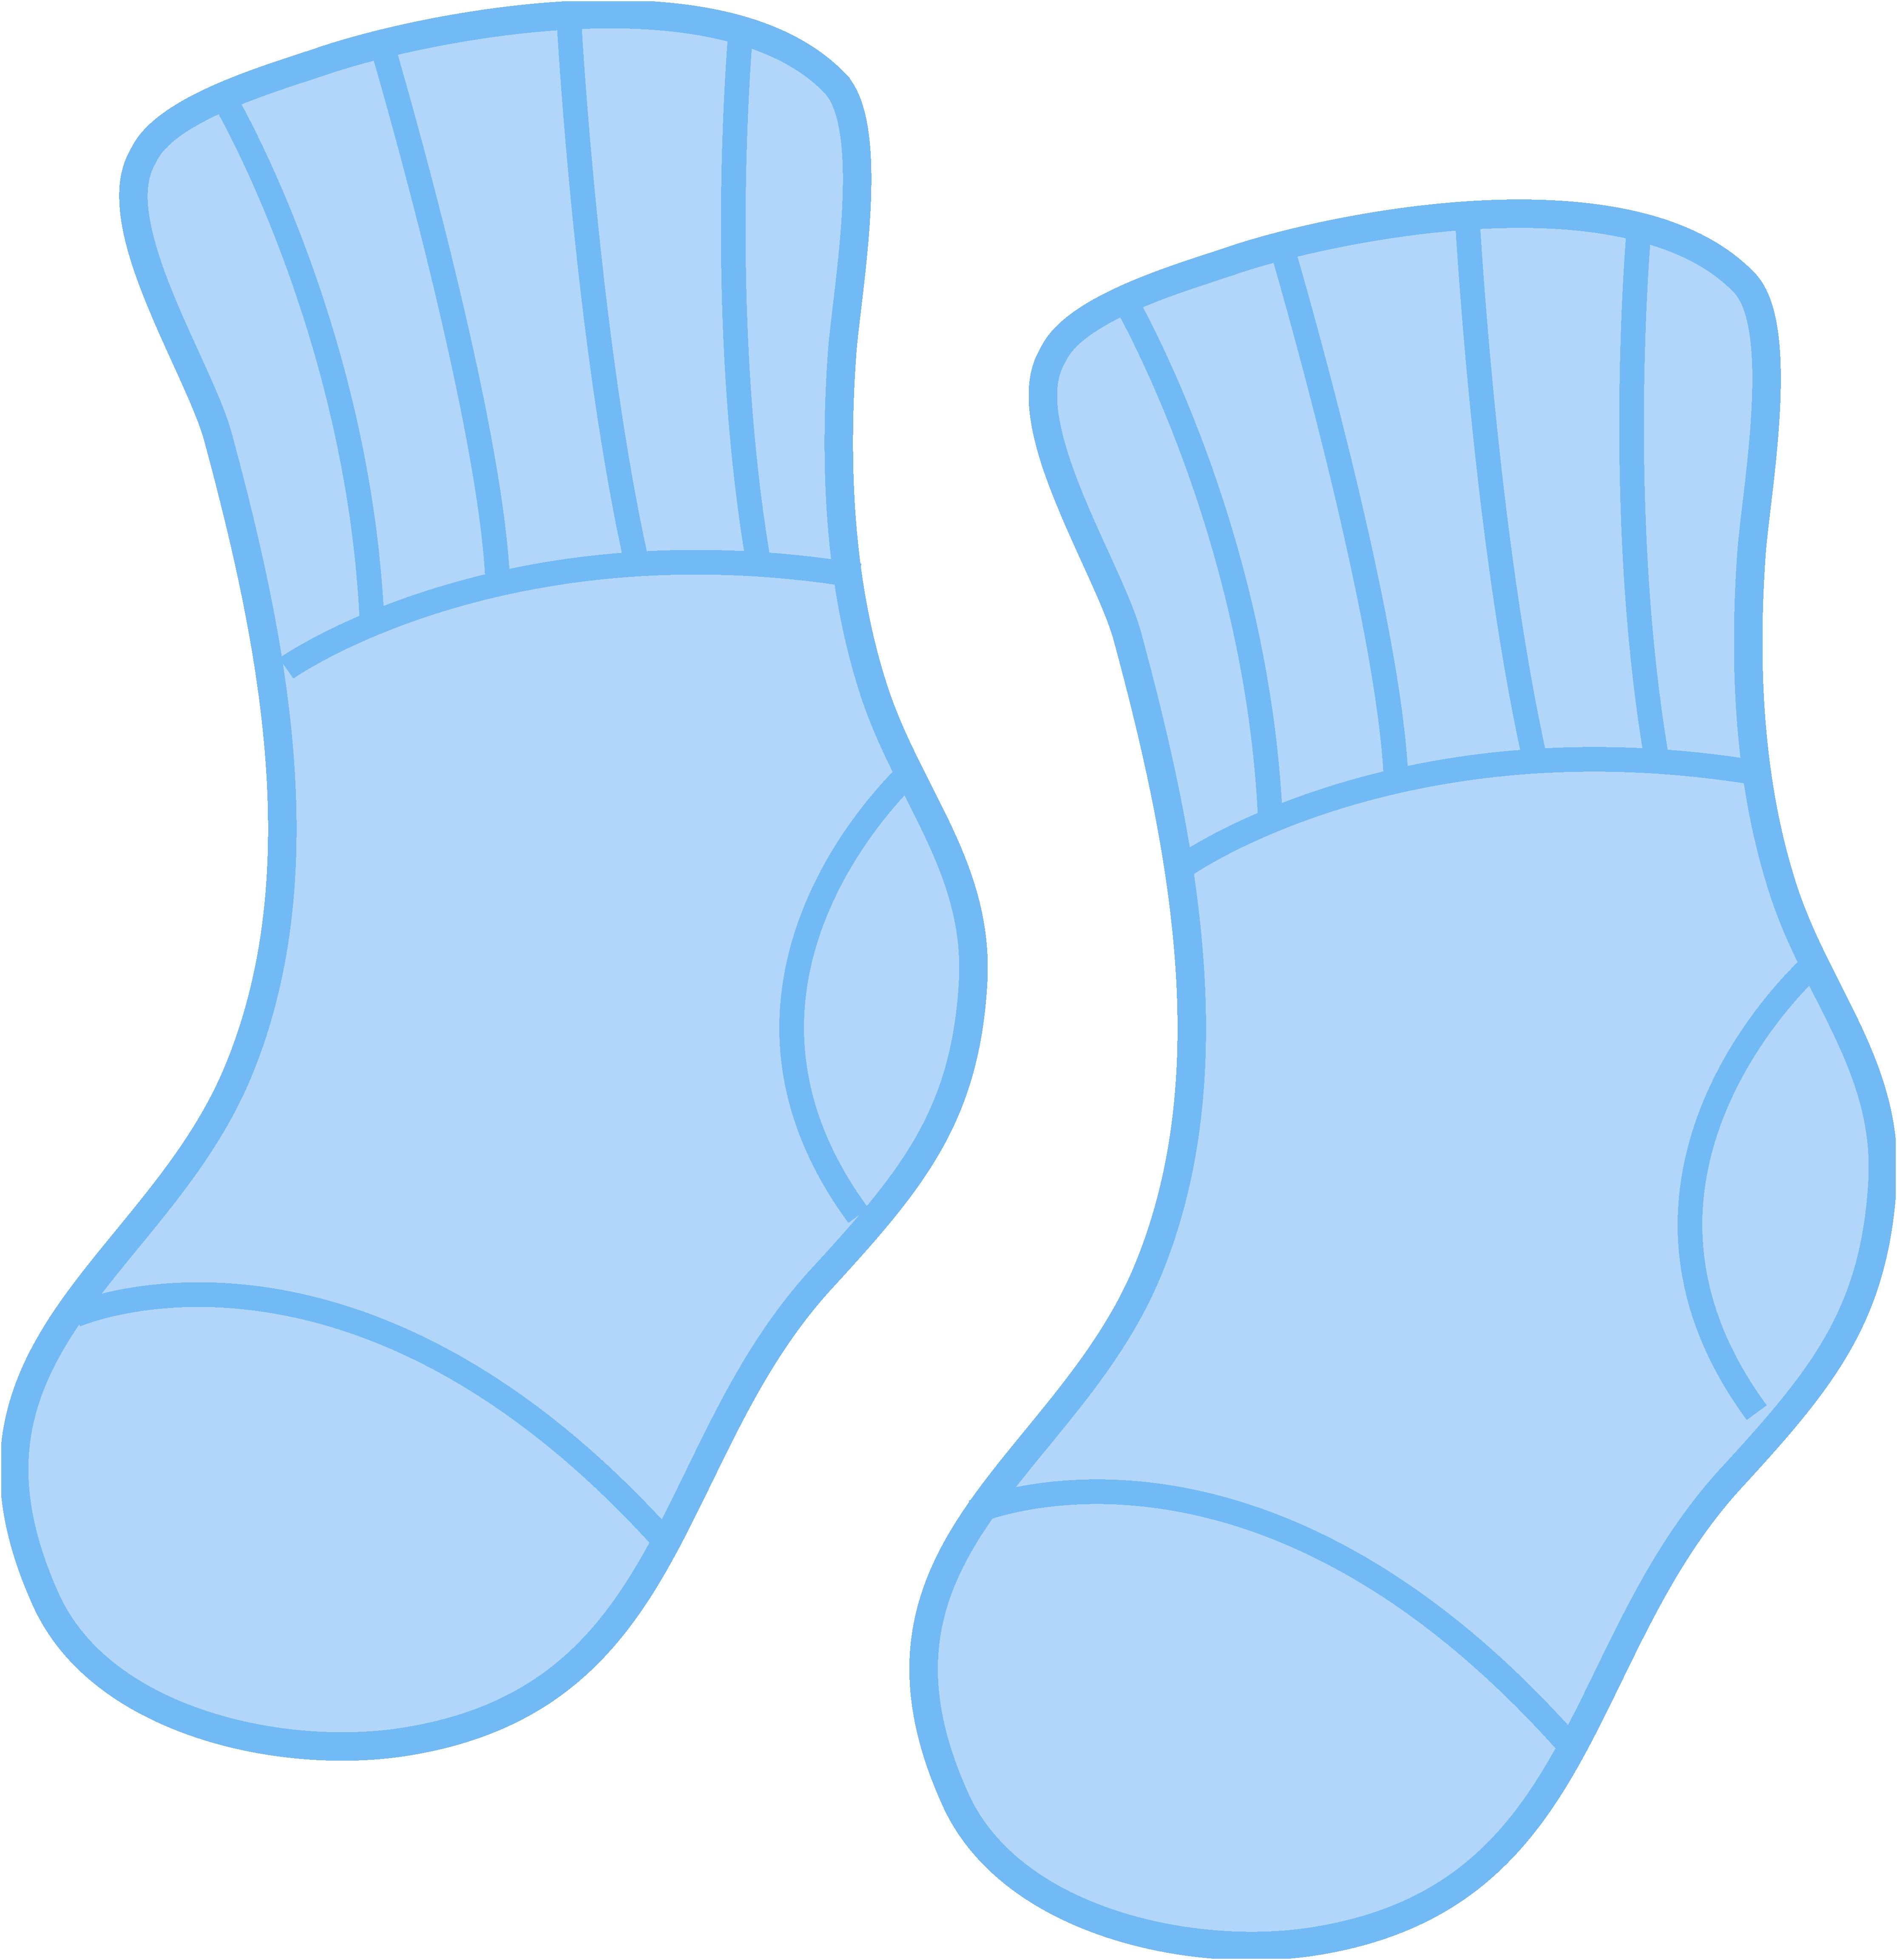 Socks clipart winged. Inspirational baby boy blue